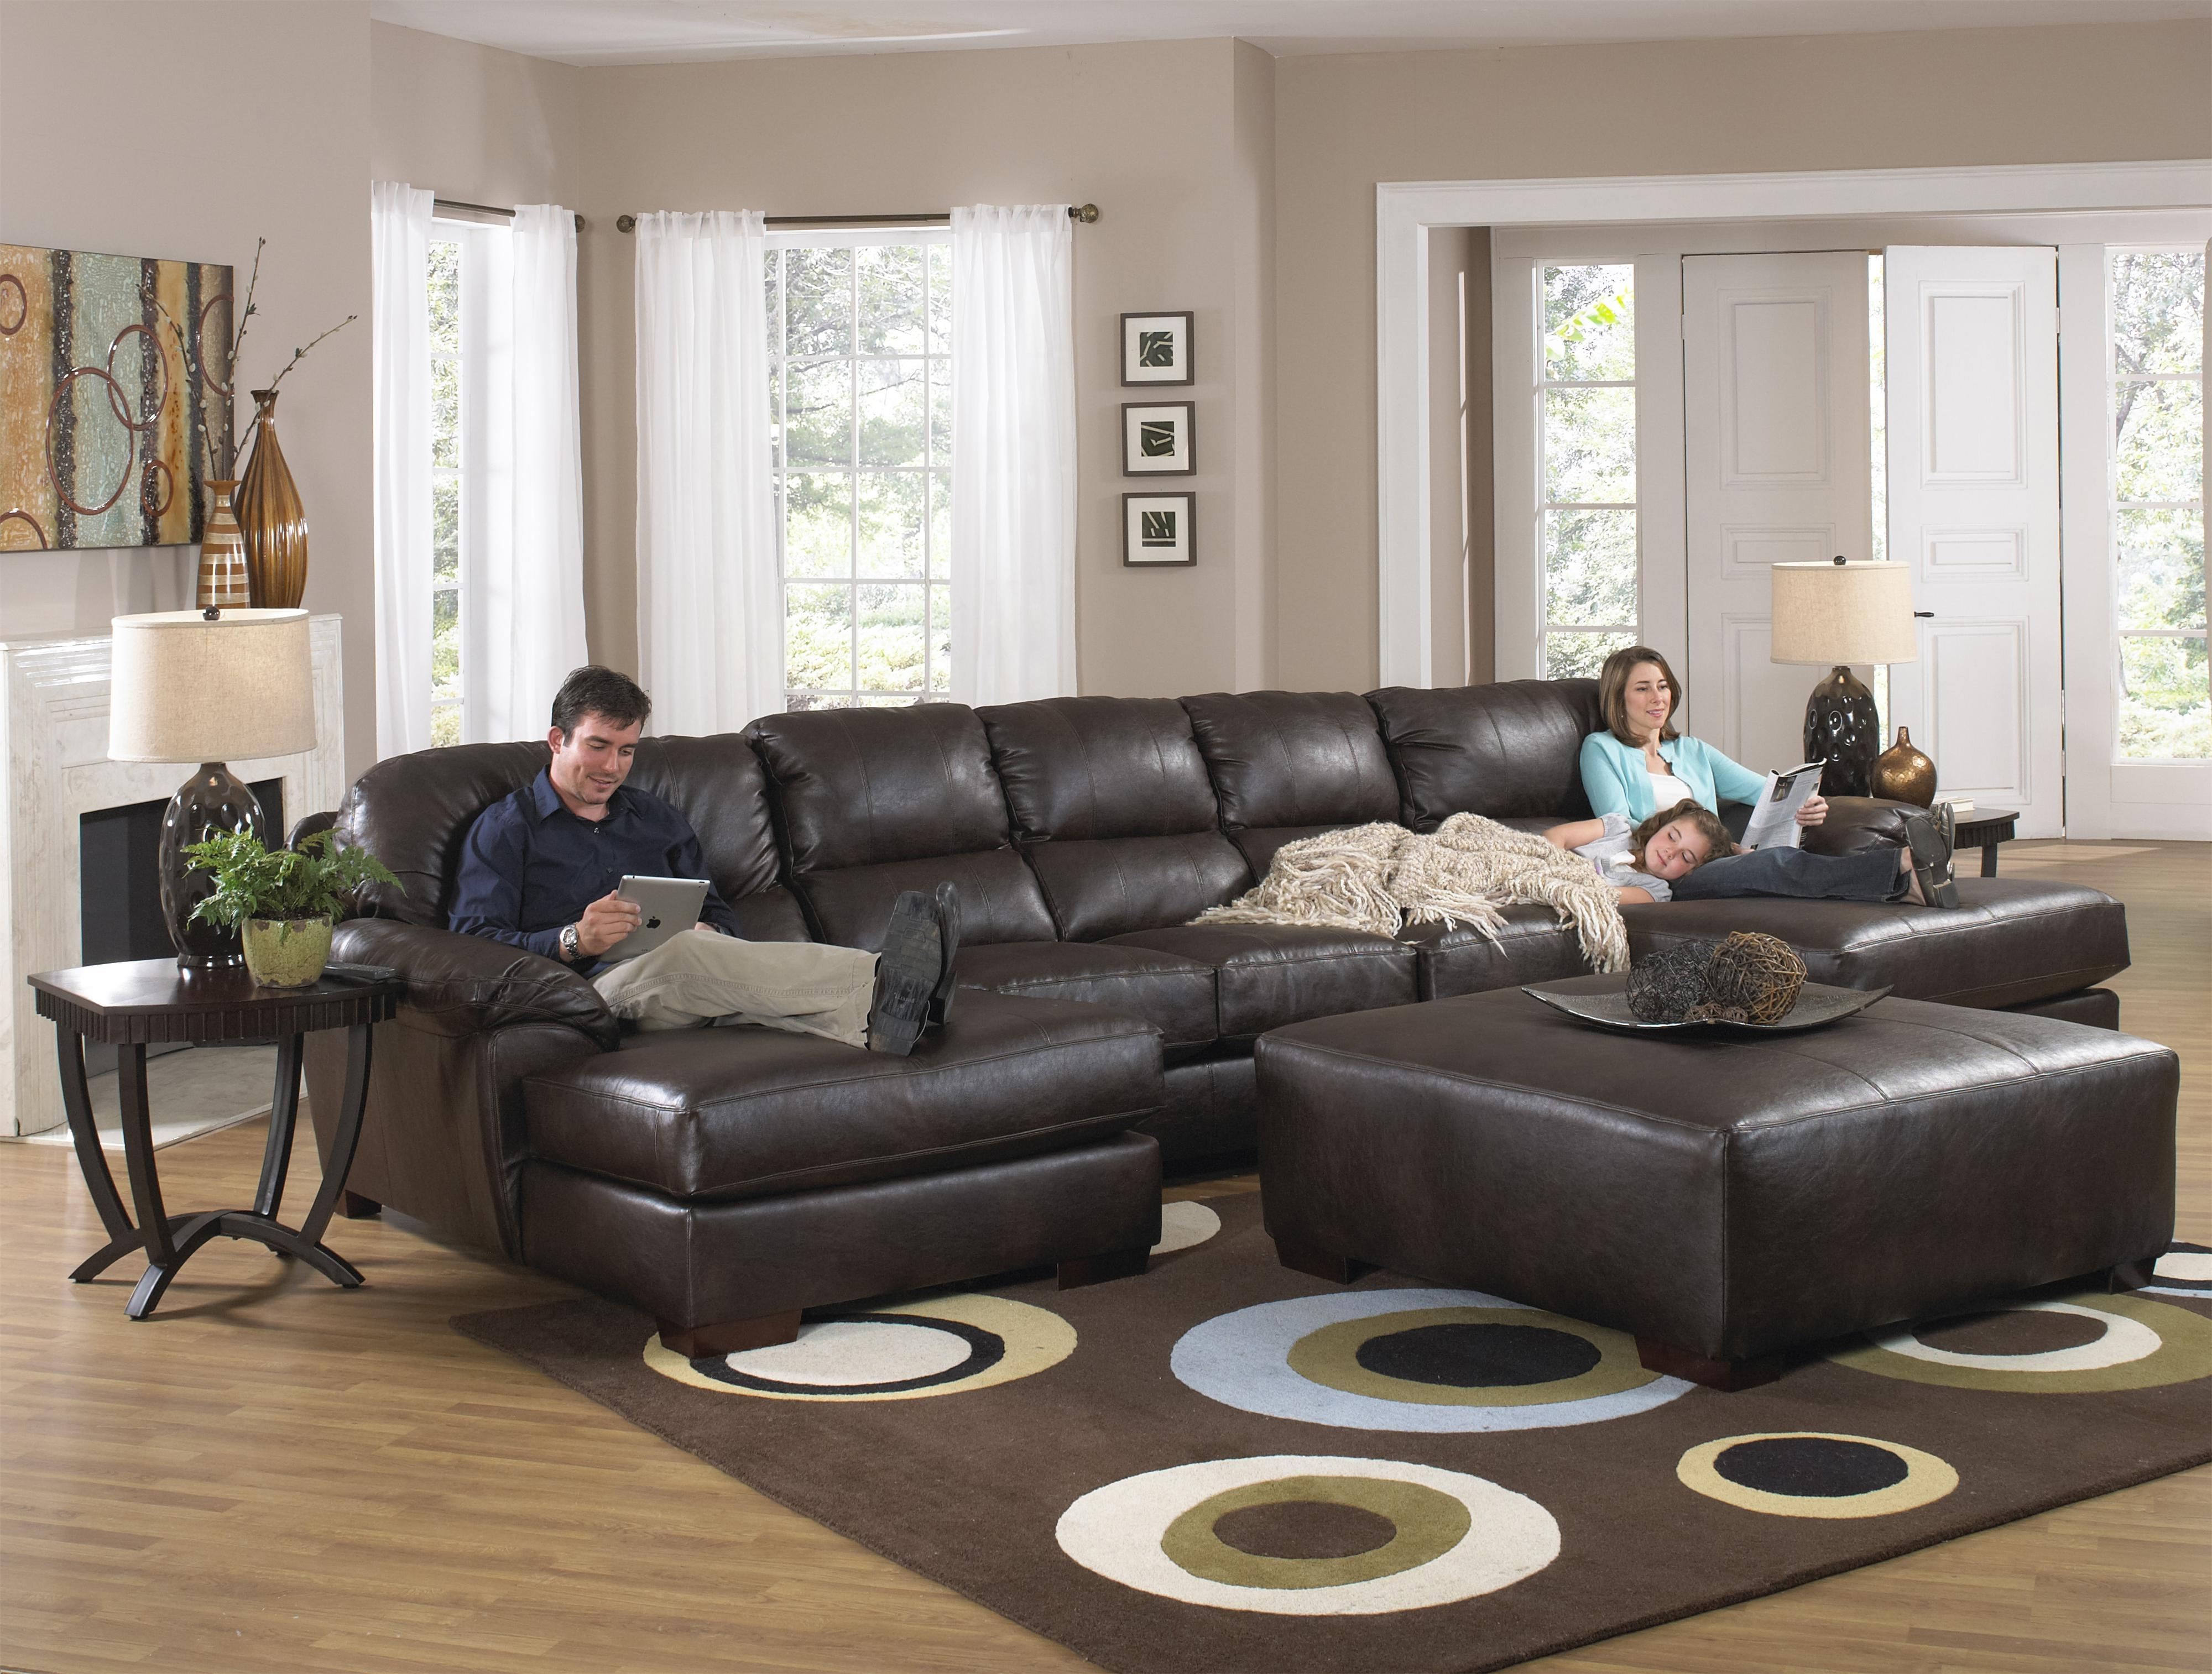 Small Sectional Sofas With Chaise And Ottoman Inside Well Liked Sofa : Beautiful Large Sectional Sofa With Chaise L Shaped Cream (View 4 of 20)